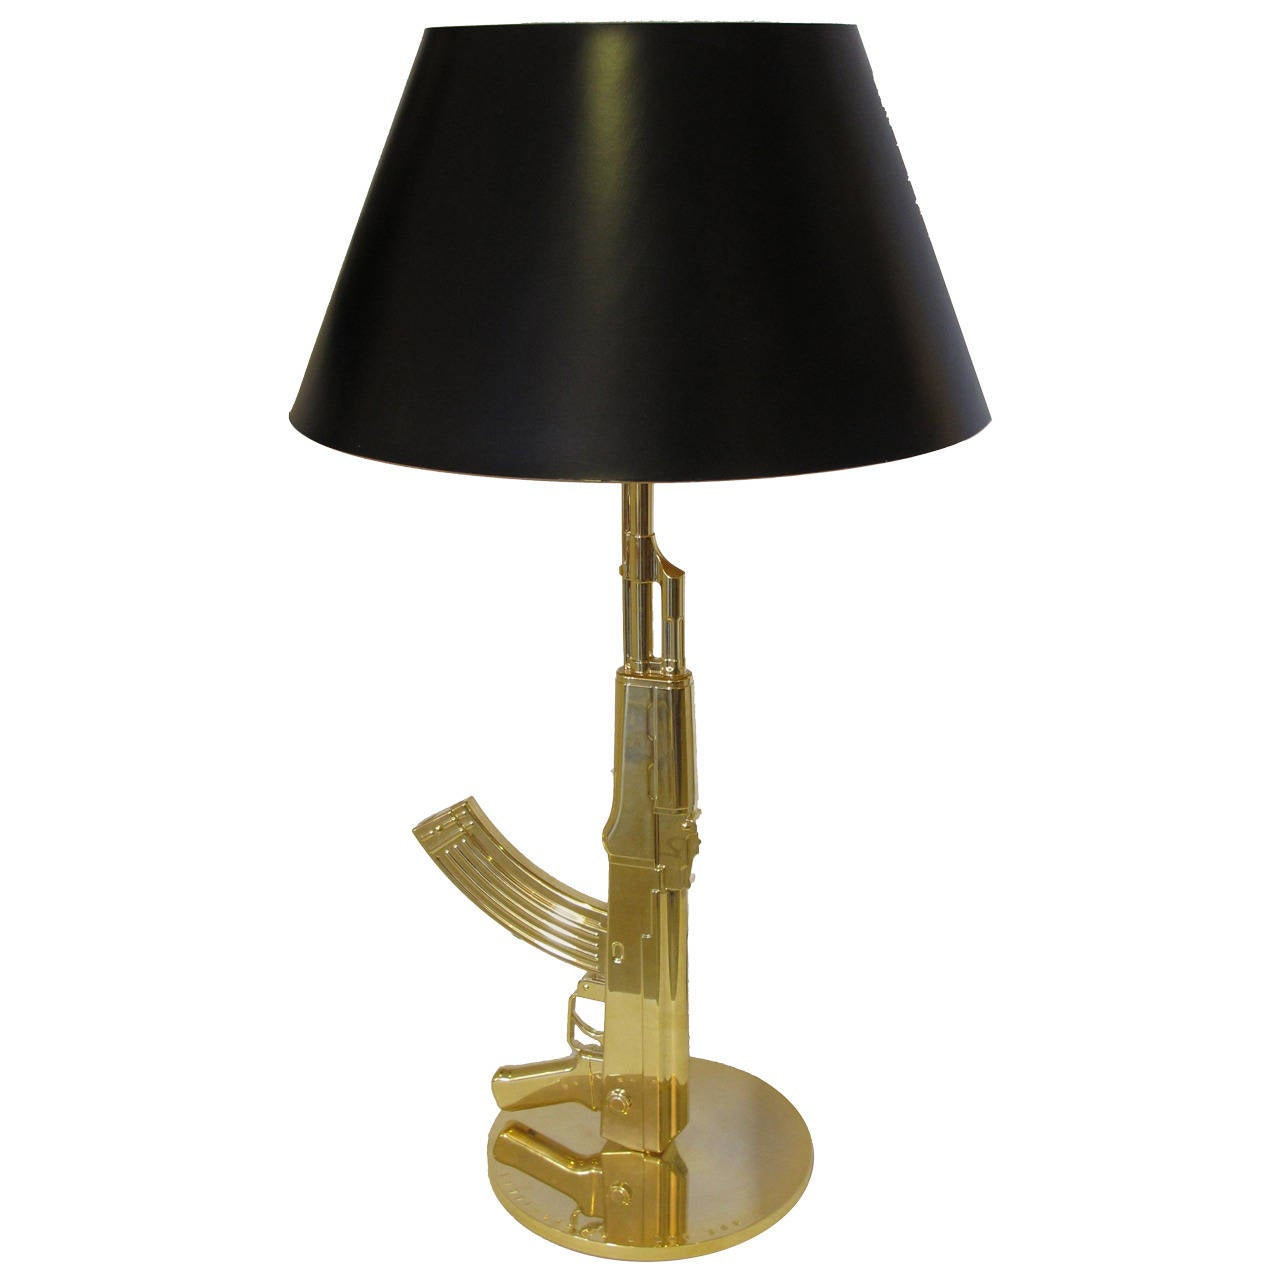 Philippe starck gun lamp at 1stdibs for Philippe starck glass table